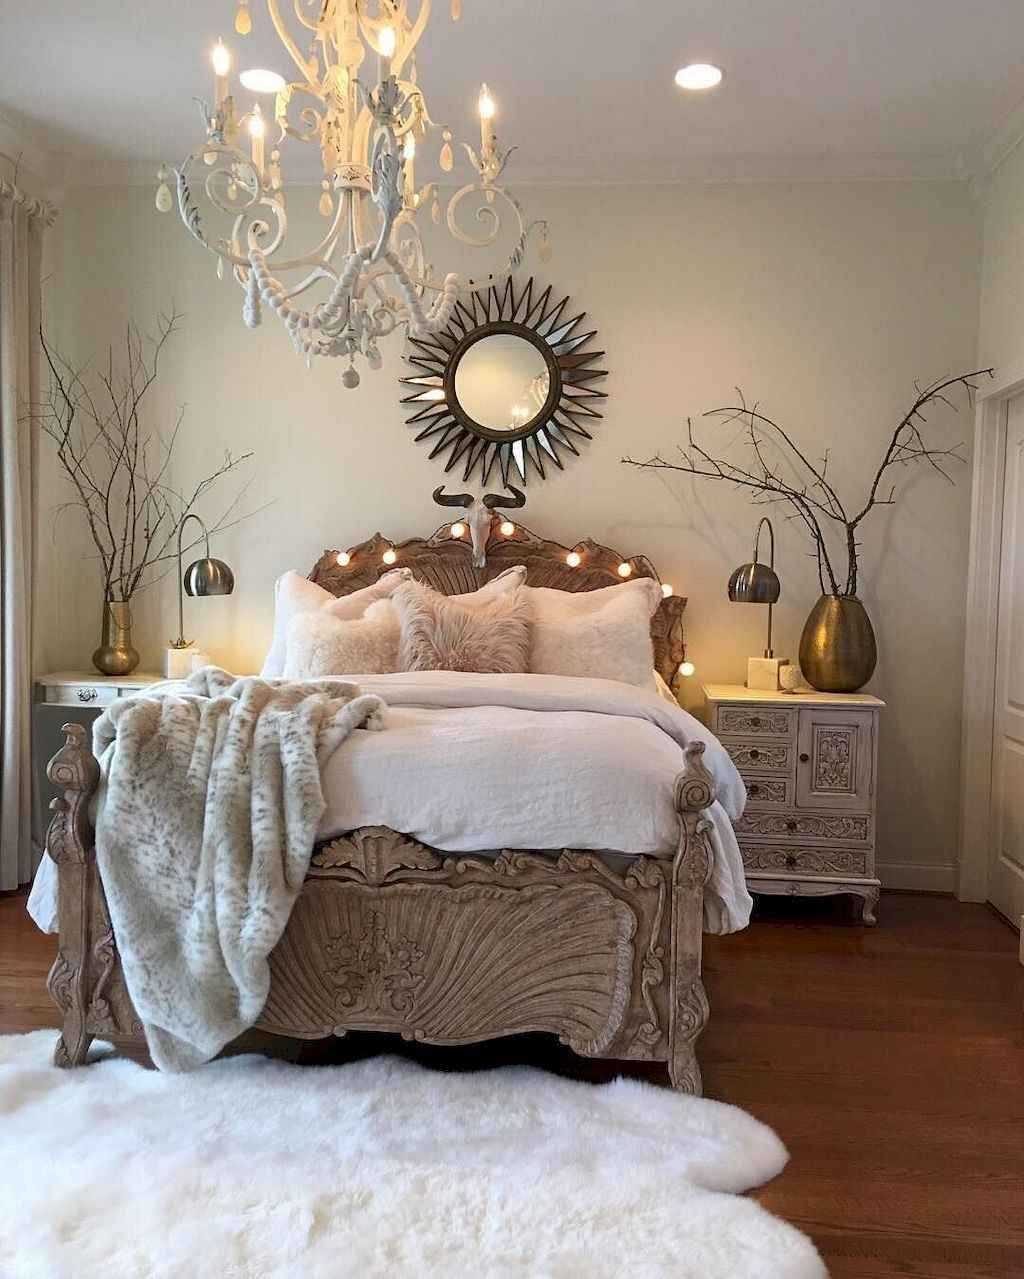 15 Wicked Rustic Bedroom Designs That Will Make You Want Them: 60 Modern Farmhouse Master Bedroom Ideas